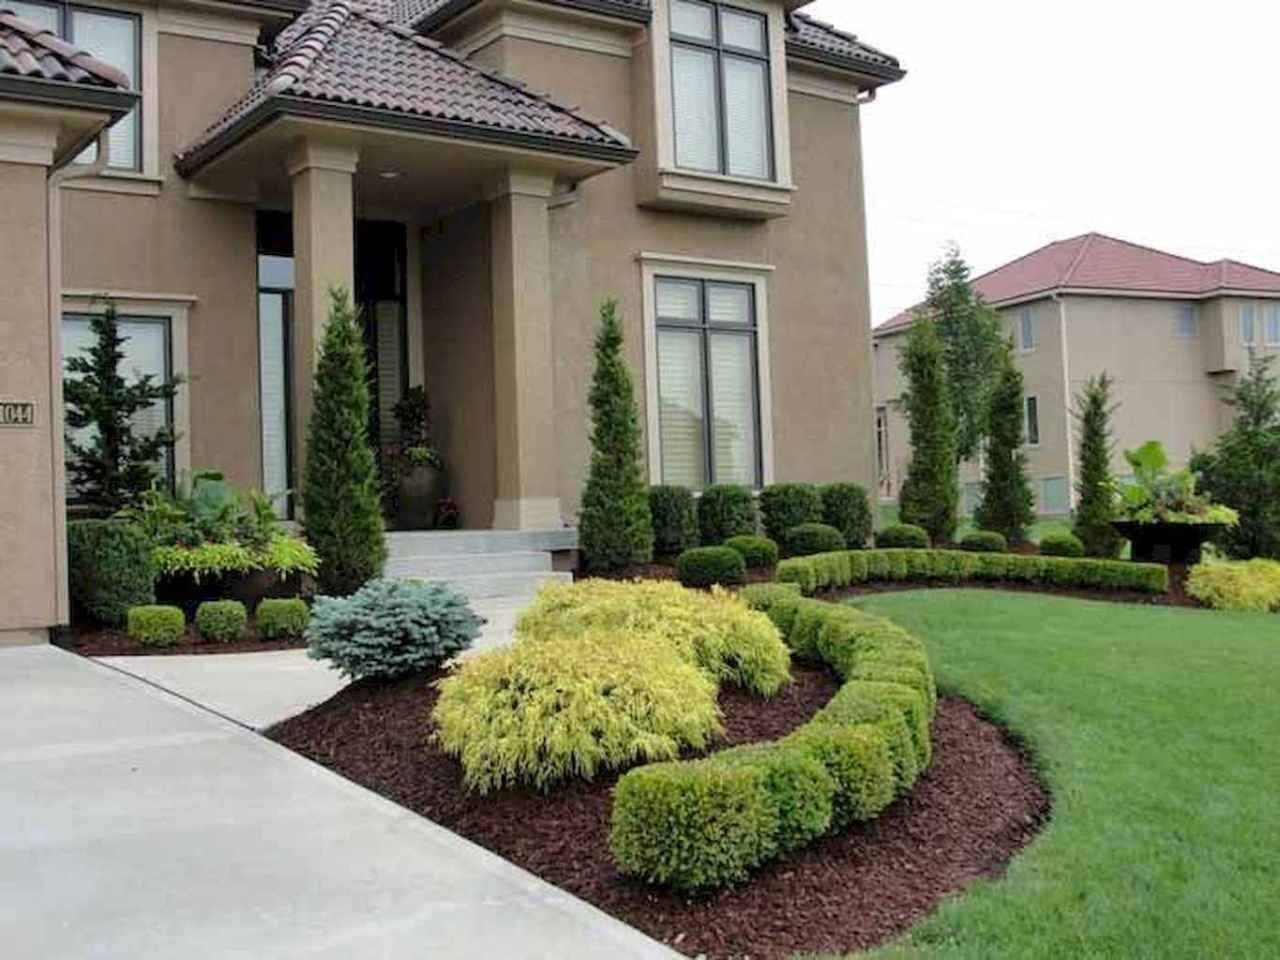 25 Beautiful Front Yard Landscaping Ideas On A Budget 21